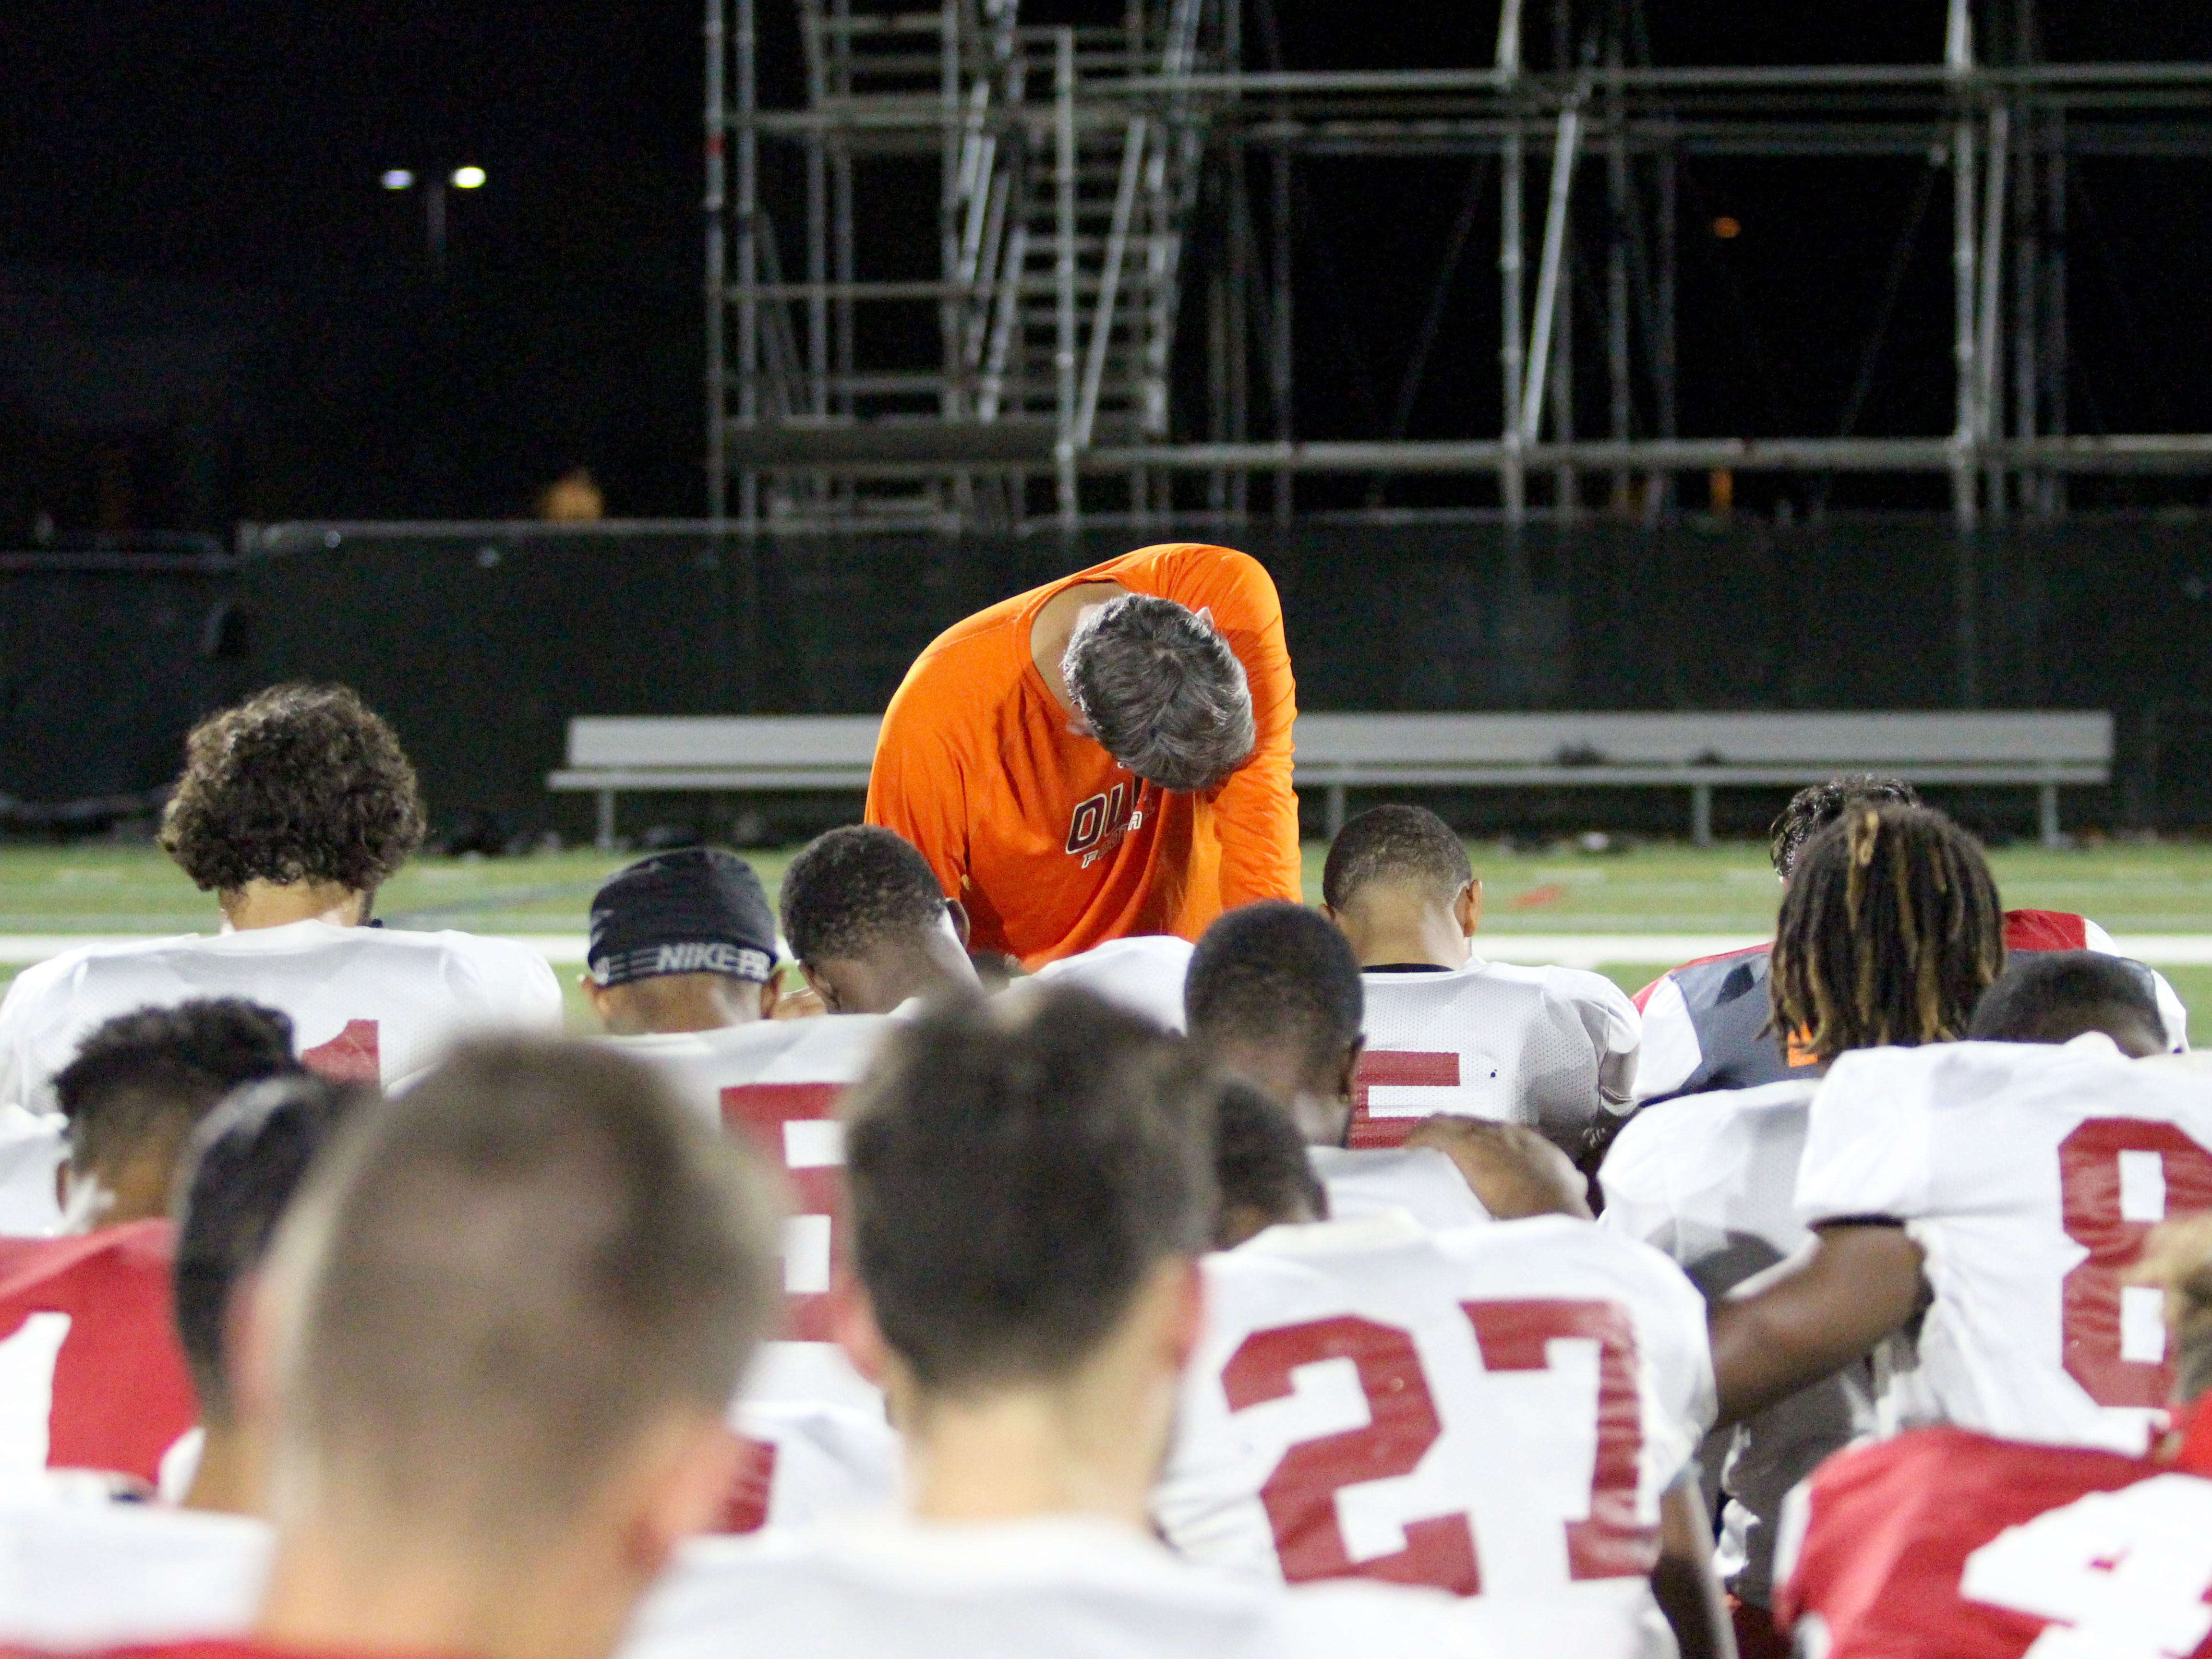 OUAZ coach Mike Nesbitt and his team pray after practice on Tuesday night in Surprise on Sept. 11, 2018.